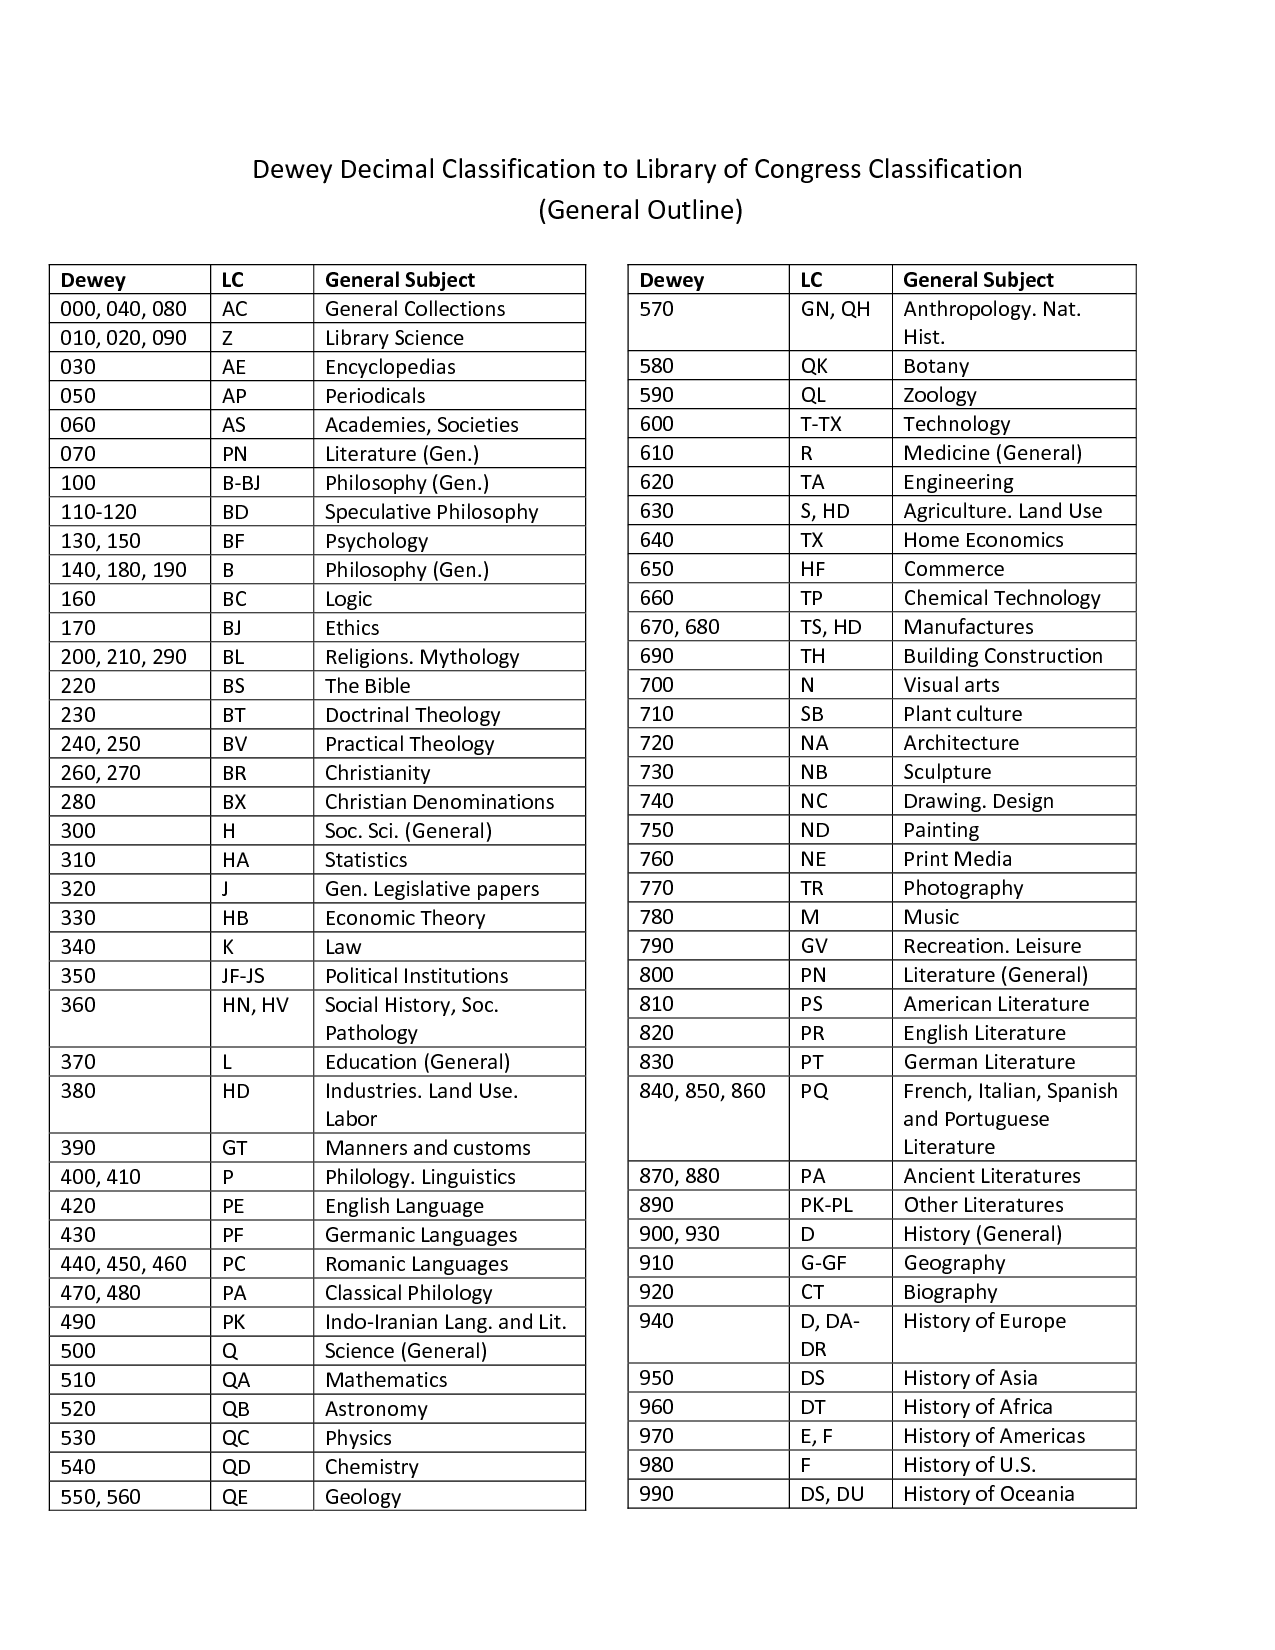 Dewey Decimal Classification Call Numbers Equvalents In Library Of Congress Classification Call